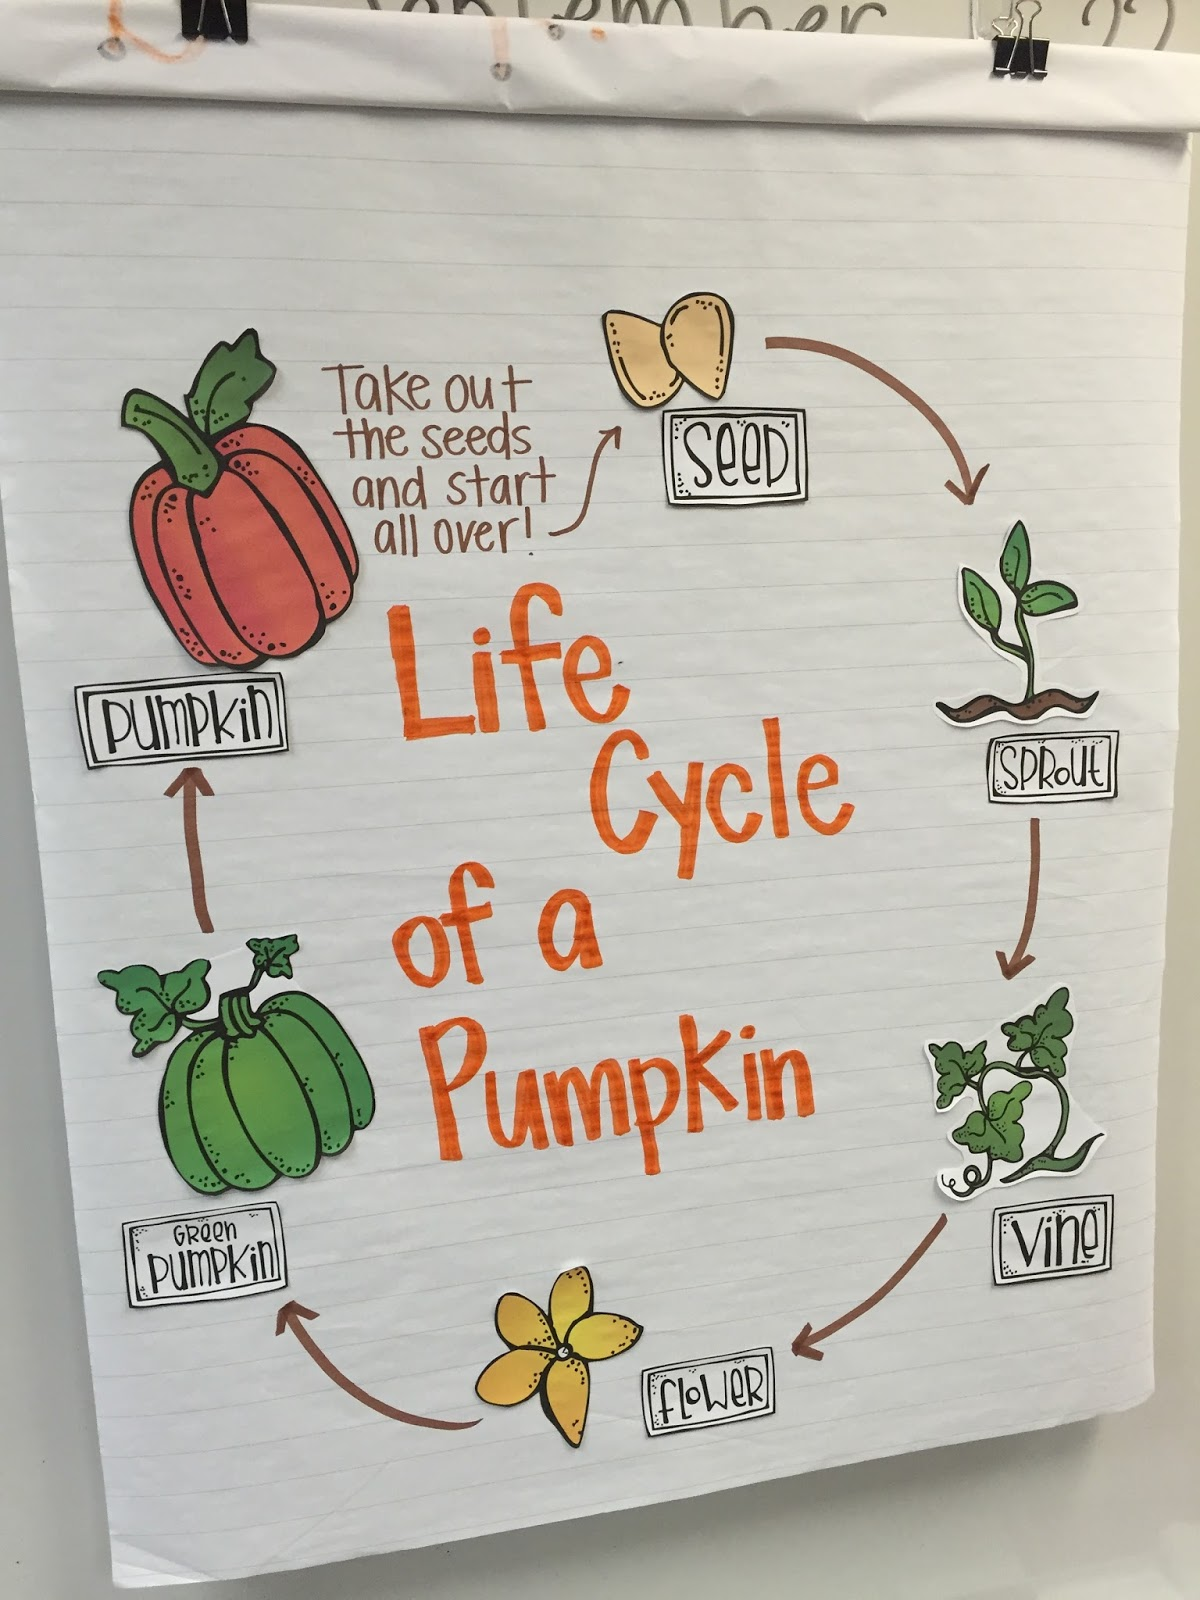 Pumpkin Seed Diagram 1972 Toyota Land Cruiser Fj40 Wiring Going Strong In 2nd Grade It 39s Punkin 39 Day Or Will Be